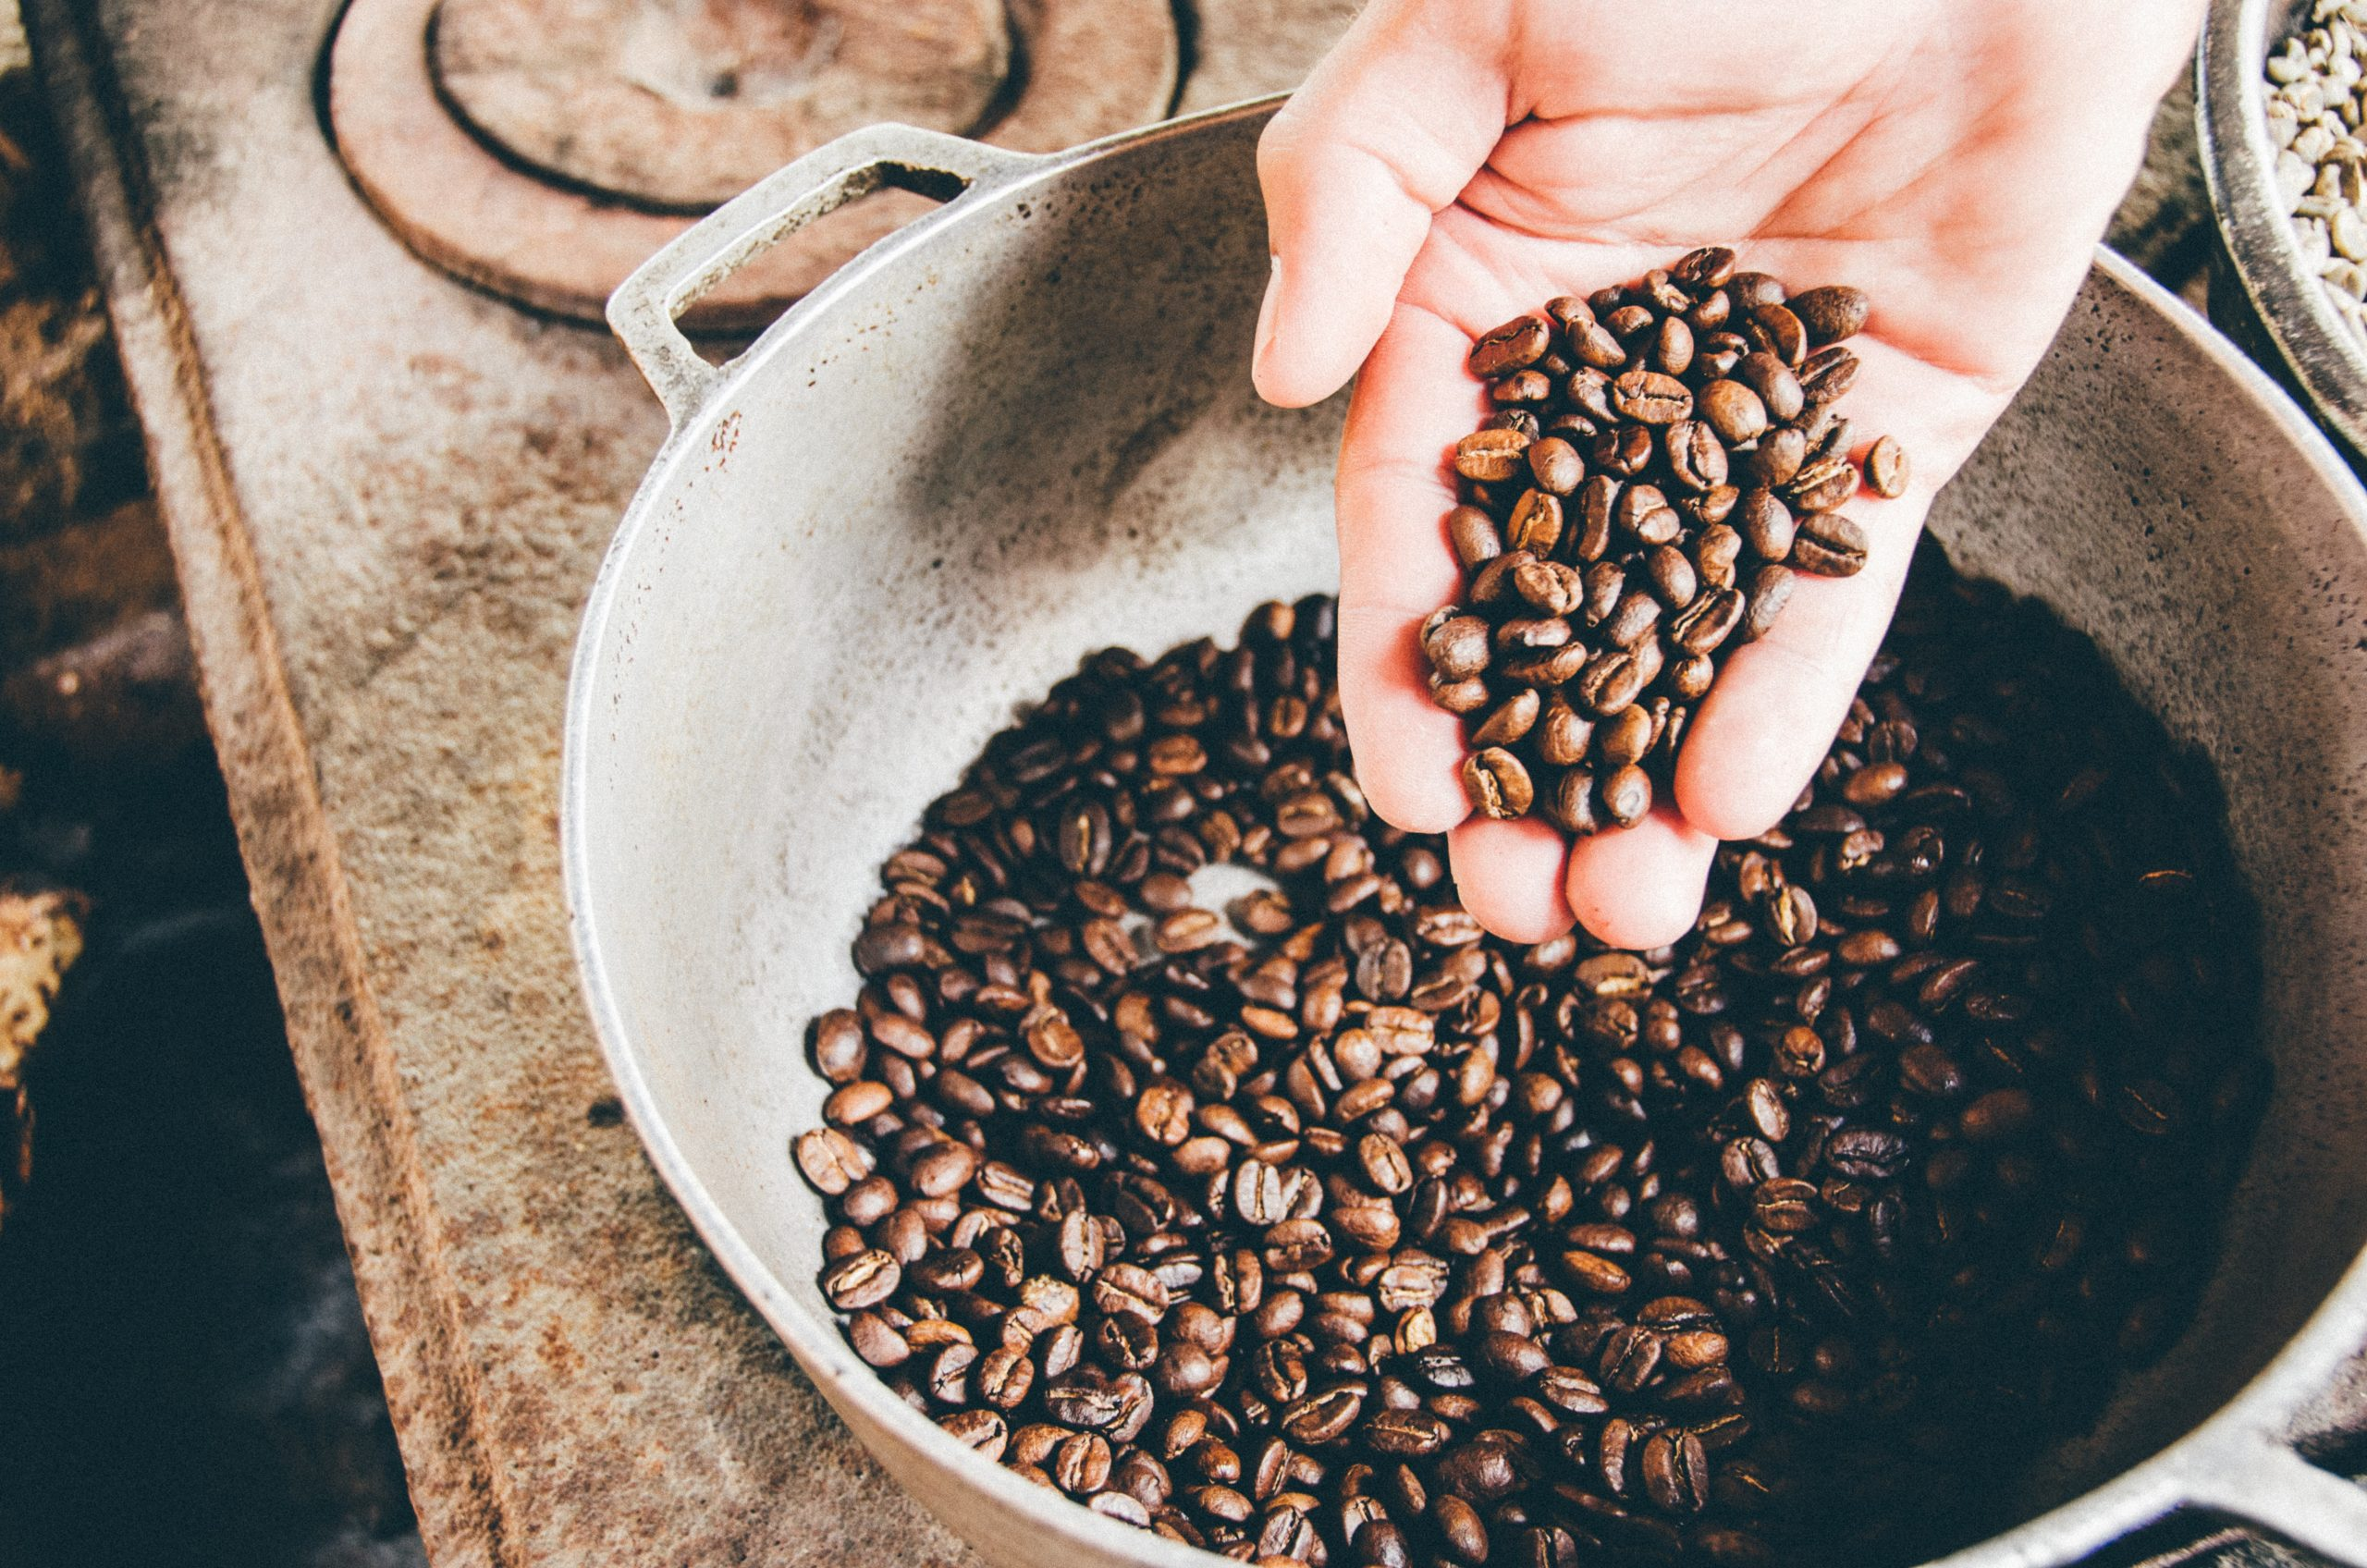 a person scooping up coffee beans using their hand